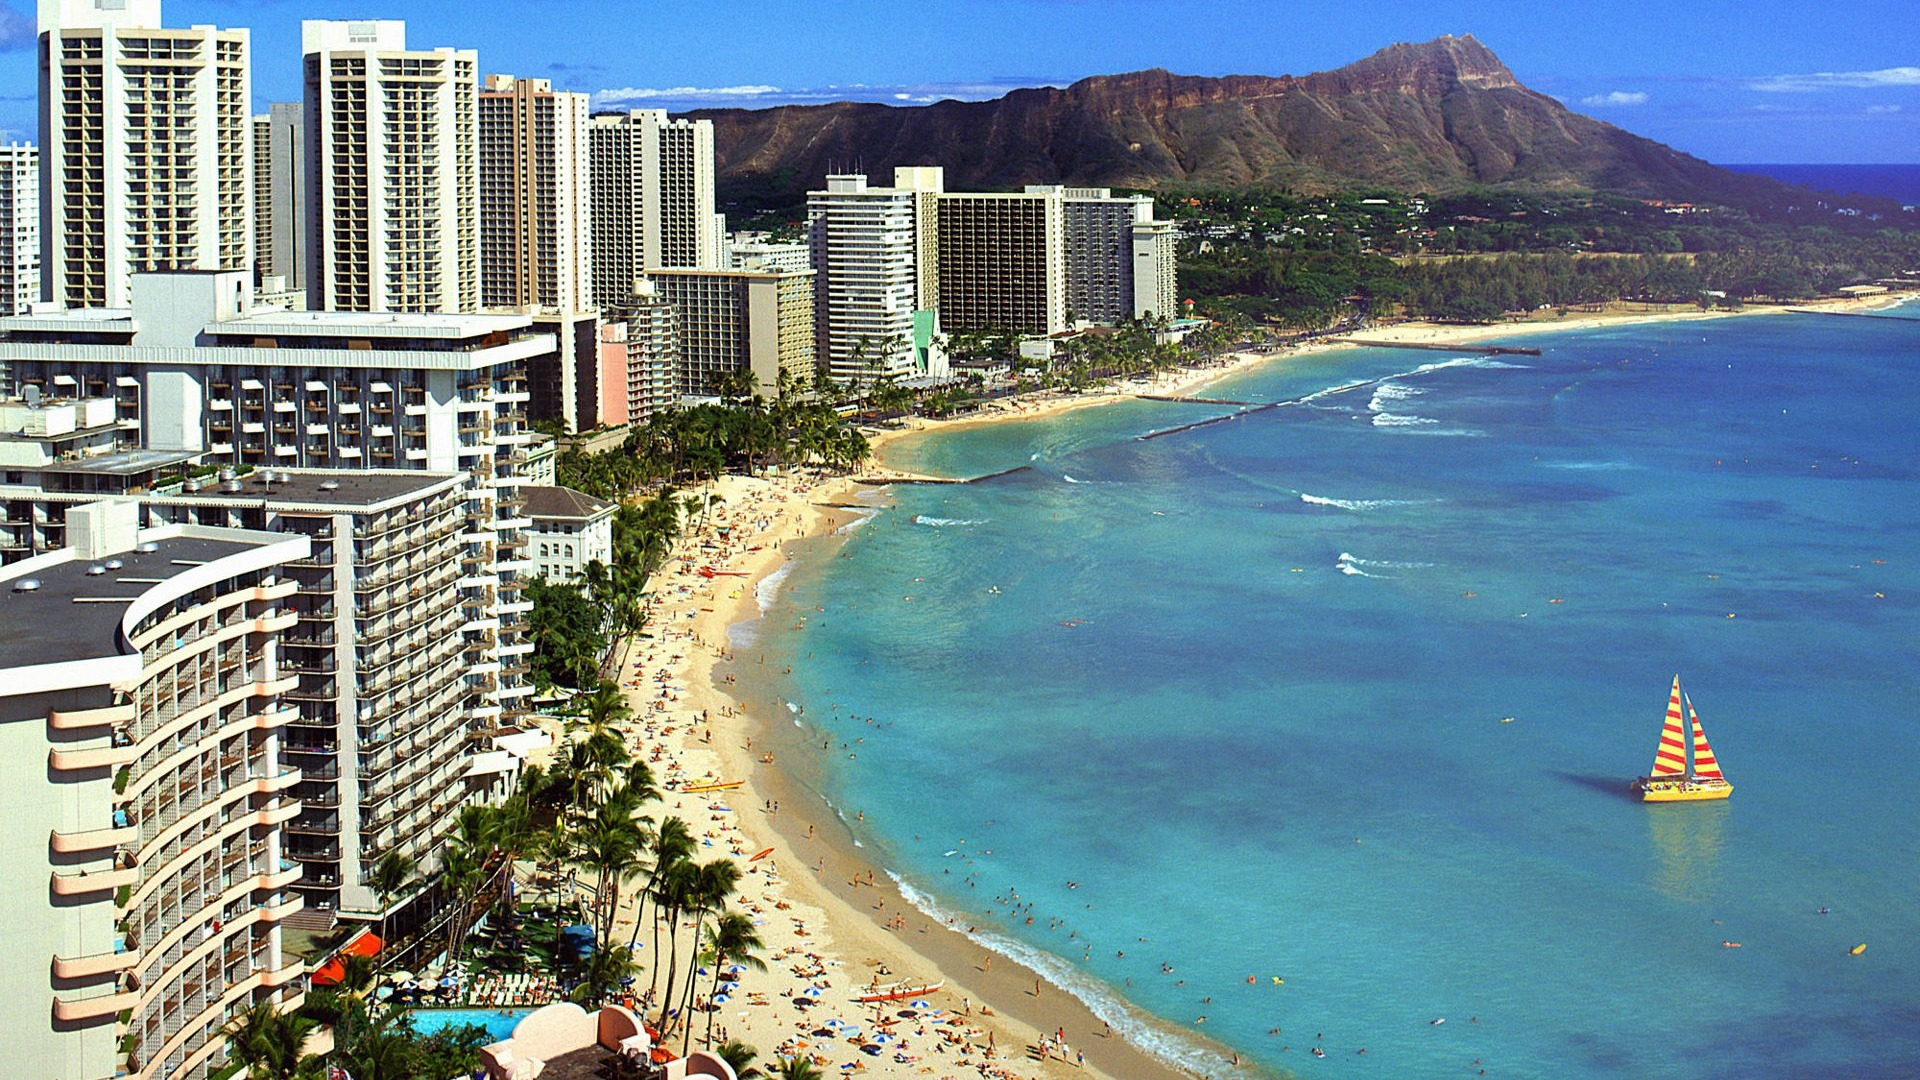 Must see Wallpaper High Resolution Hawaii - 1348150  You Should Have_15281.jpg